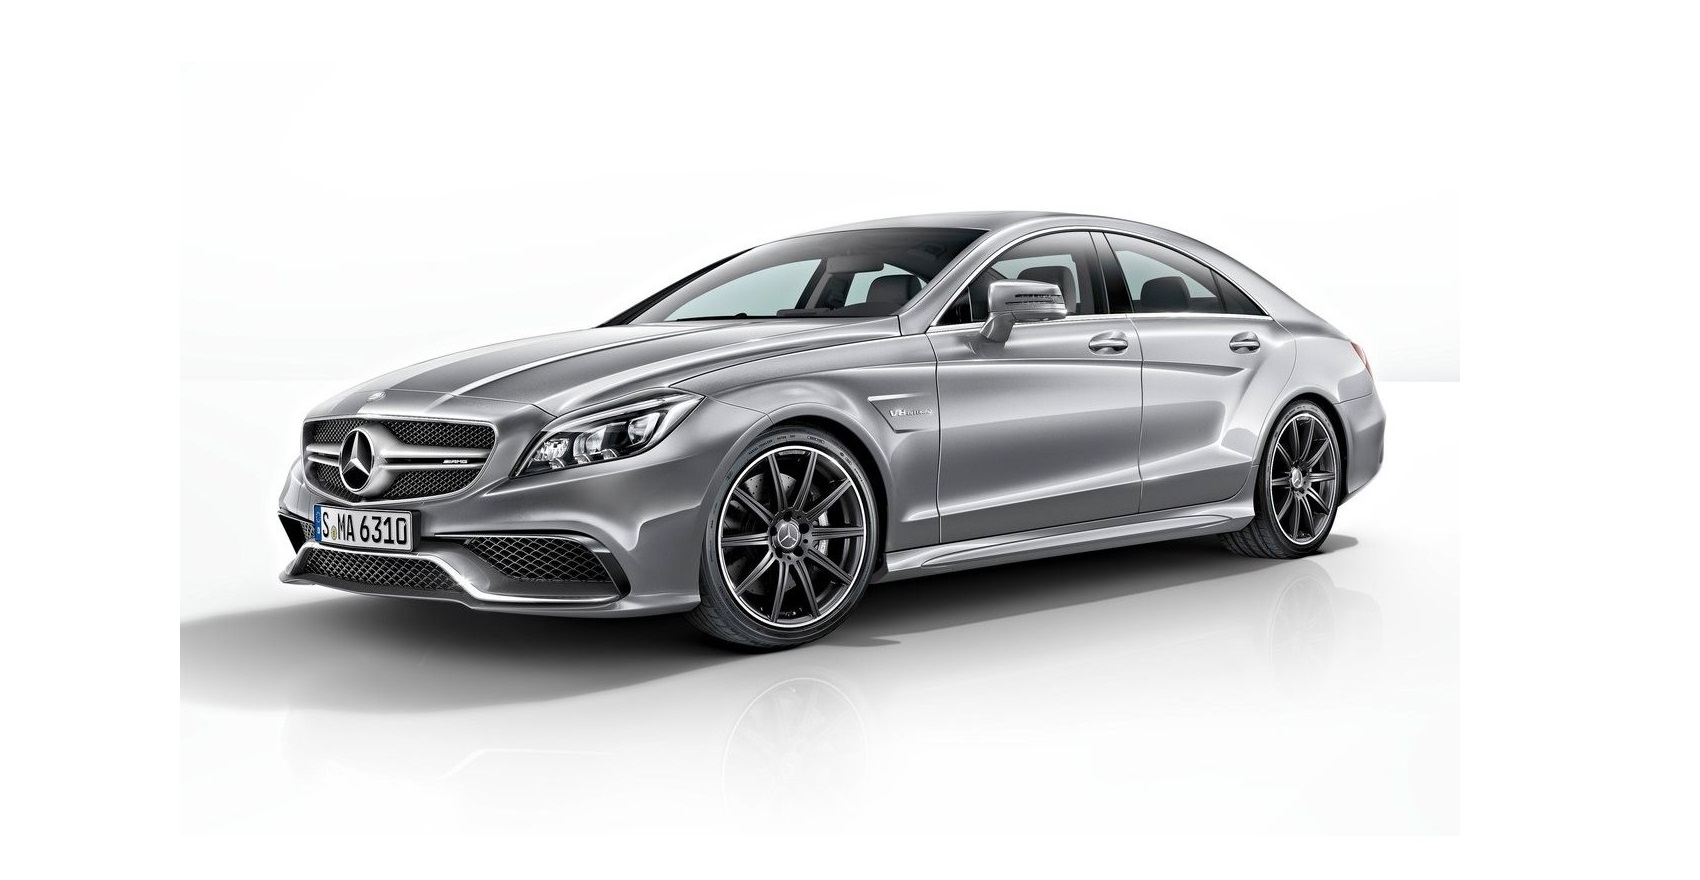 mercedes cls amg mercedes benz cls 63 amg c218 2015 22 august 2016 autogespot mercedes benz. Black Bedroom Furniture Sets. Home Design Ideas